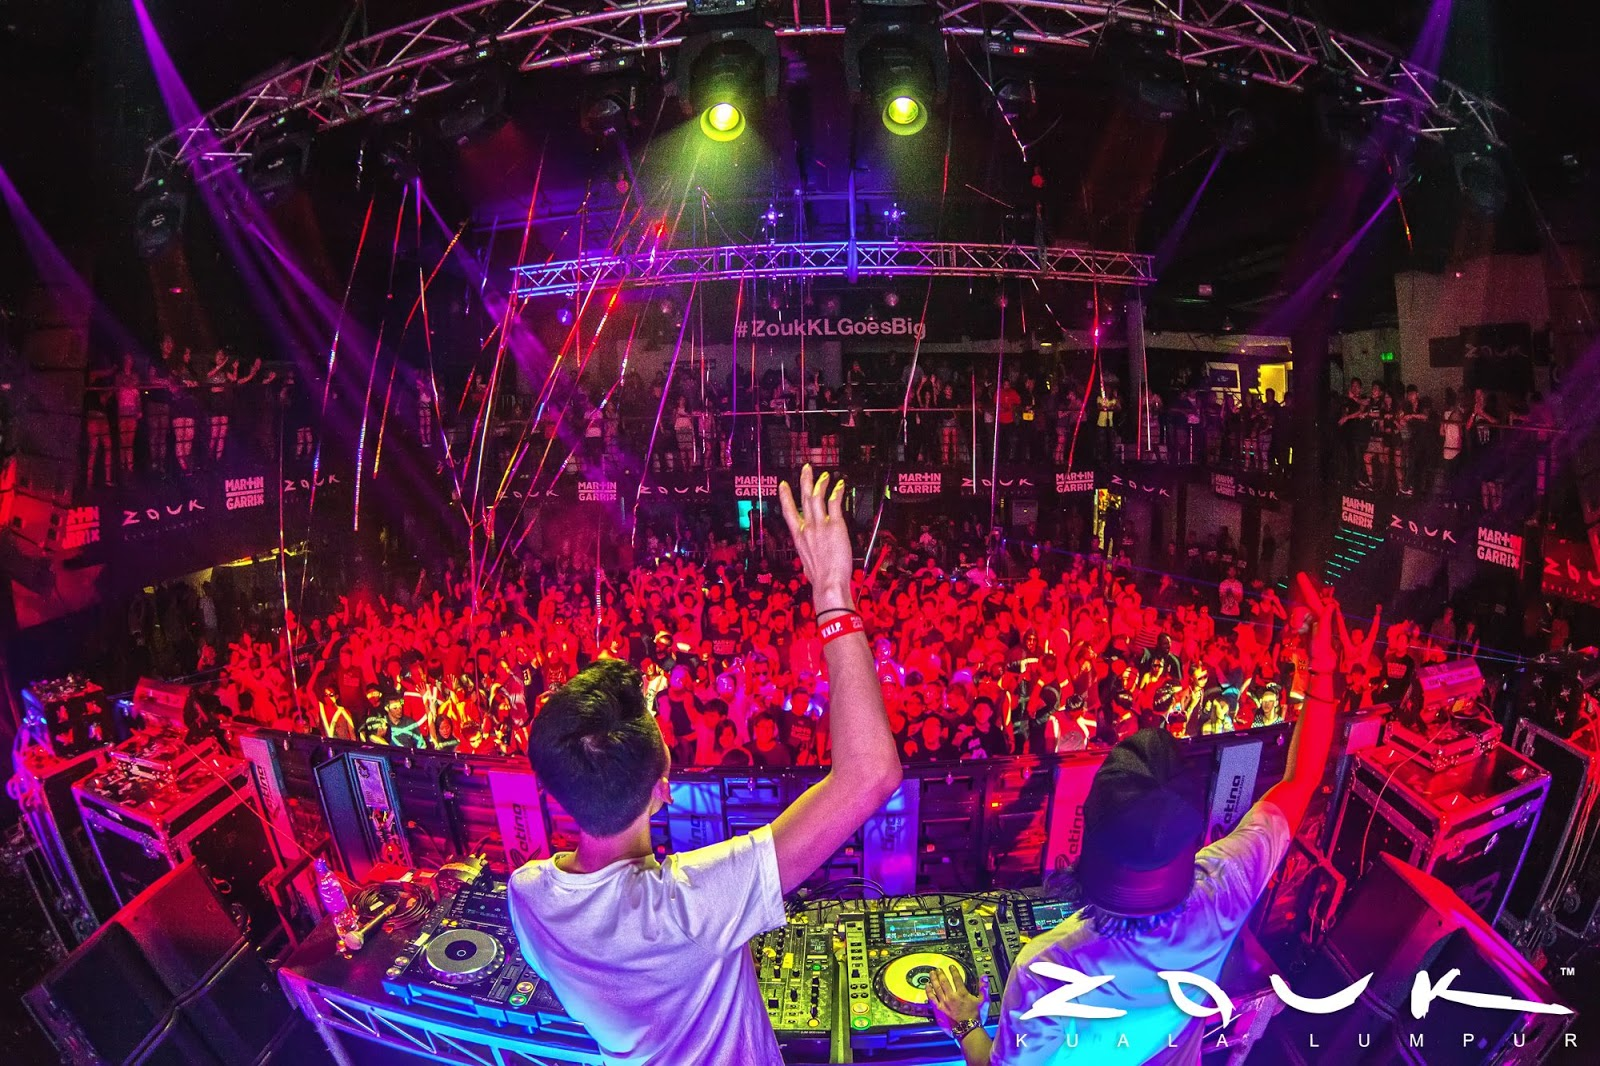 Zouk Kl To Host 2 Part Finale Parties For Relocation